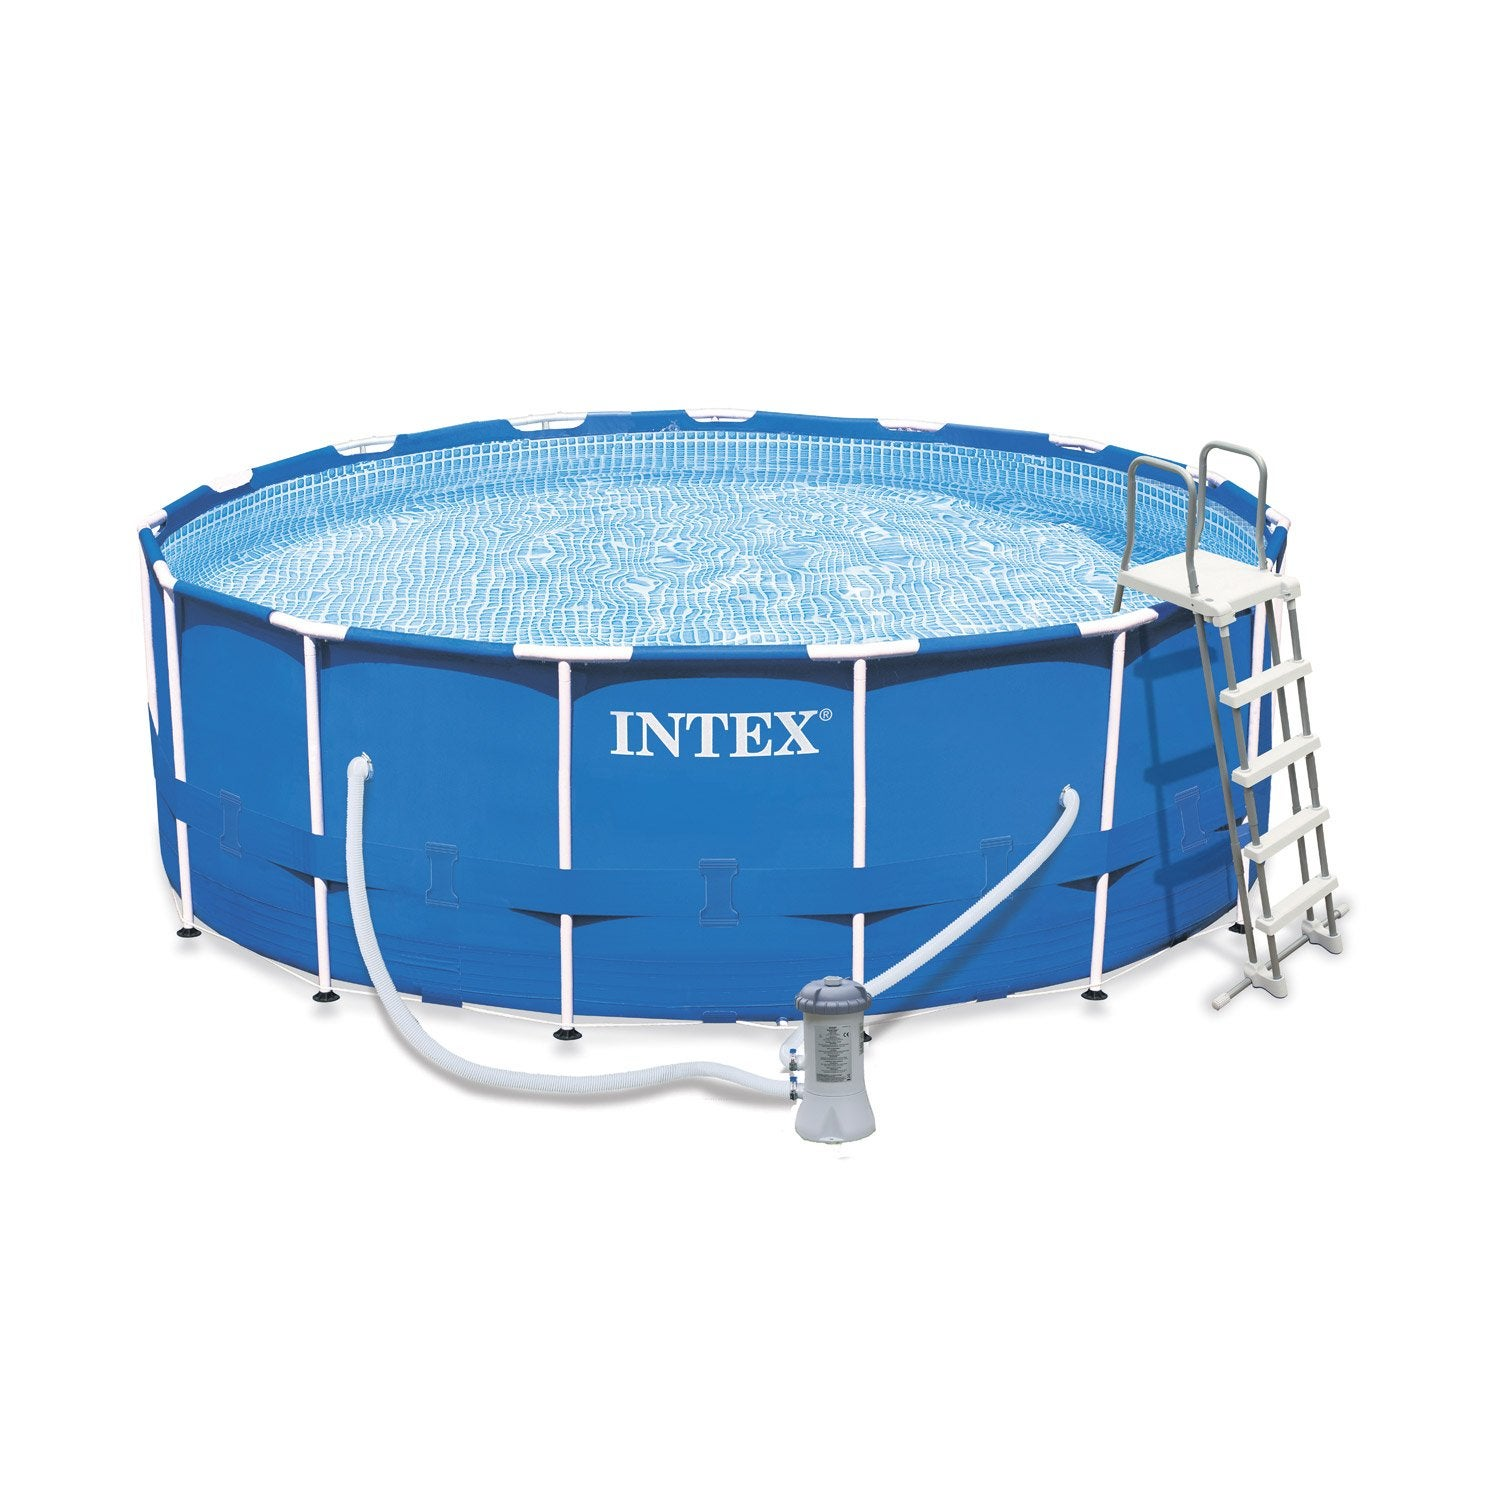 Piscine hors sol autoportante tubulaire metal frame intex for Piscine gonflable intex